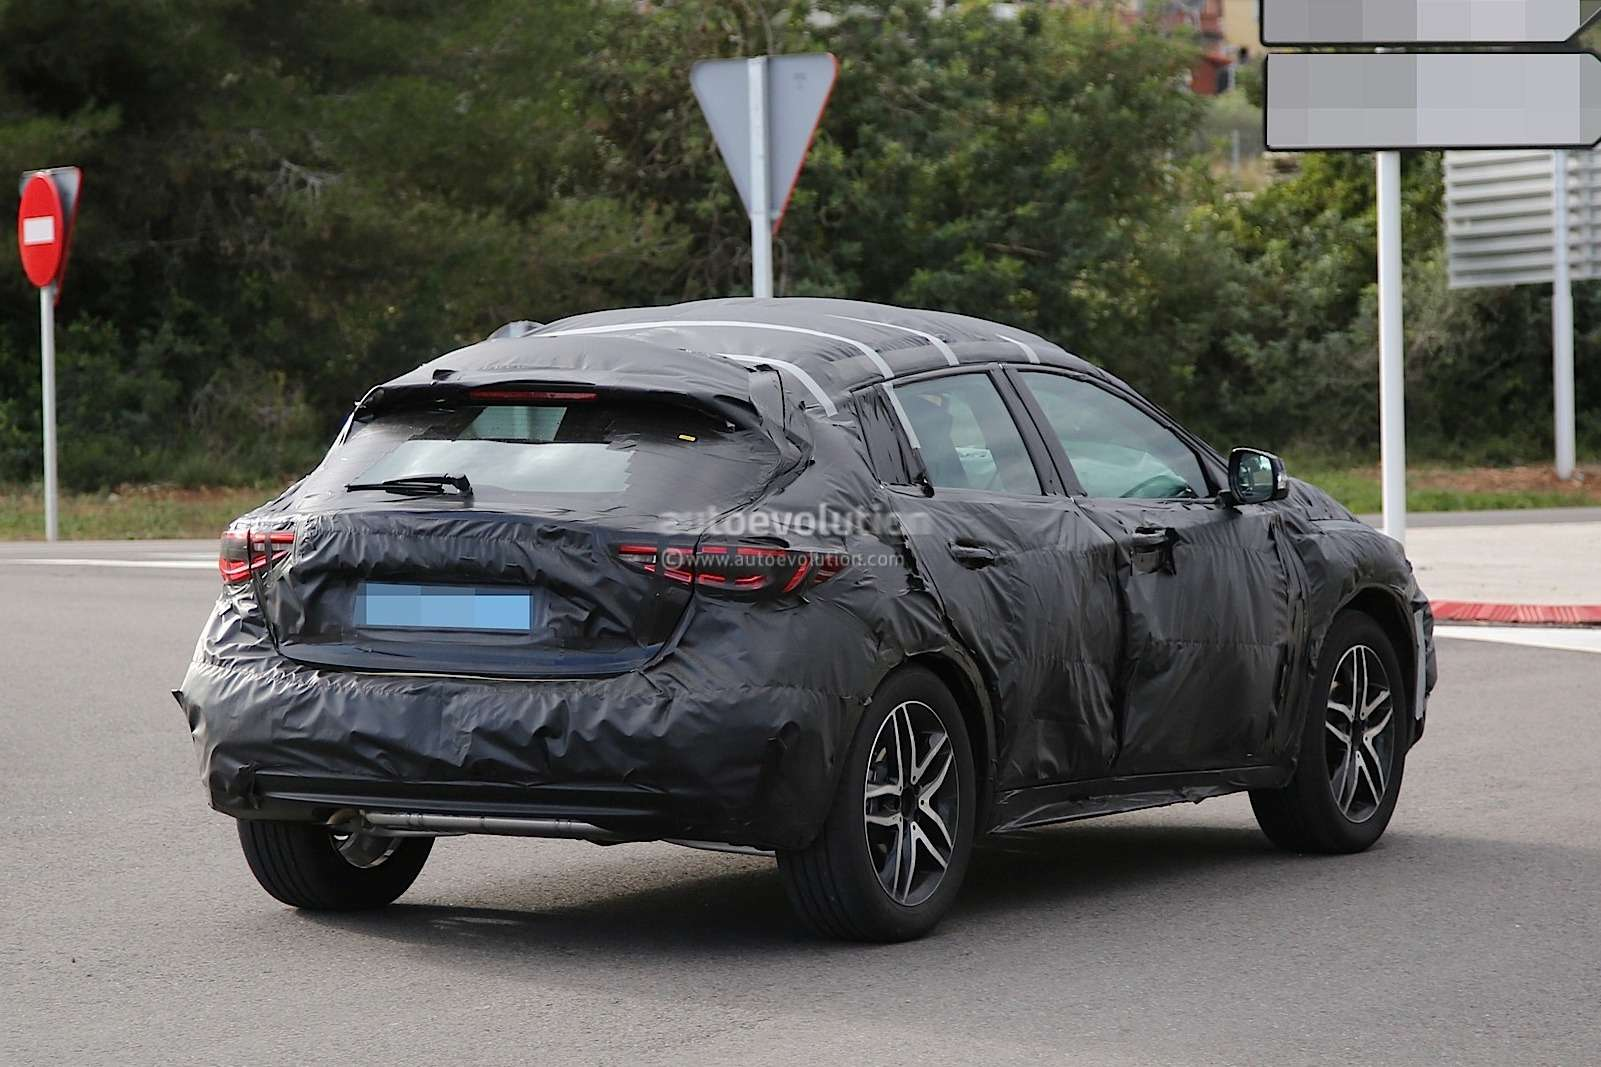 infiniti-qx30-spied-for-the-first-time-will-enter-production-in-2015-photo-gallery_9